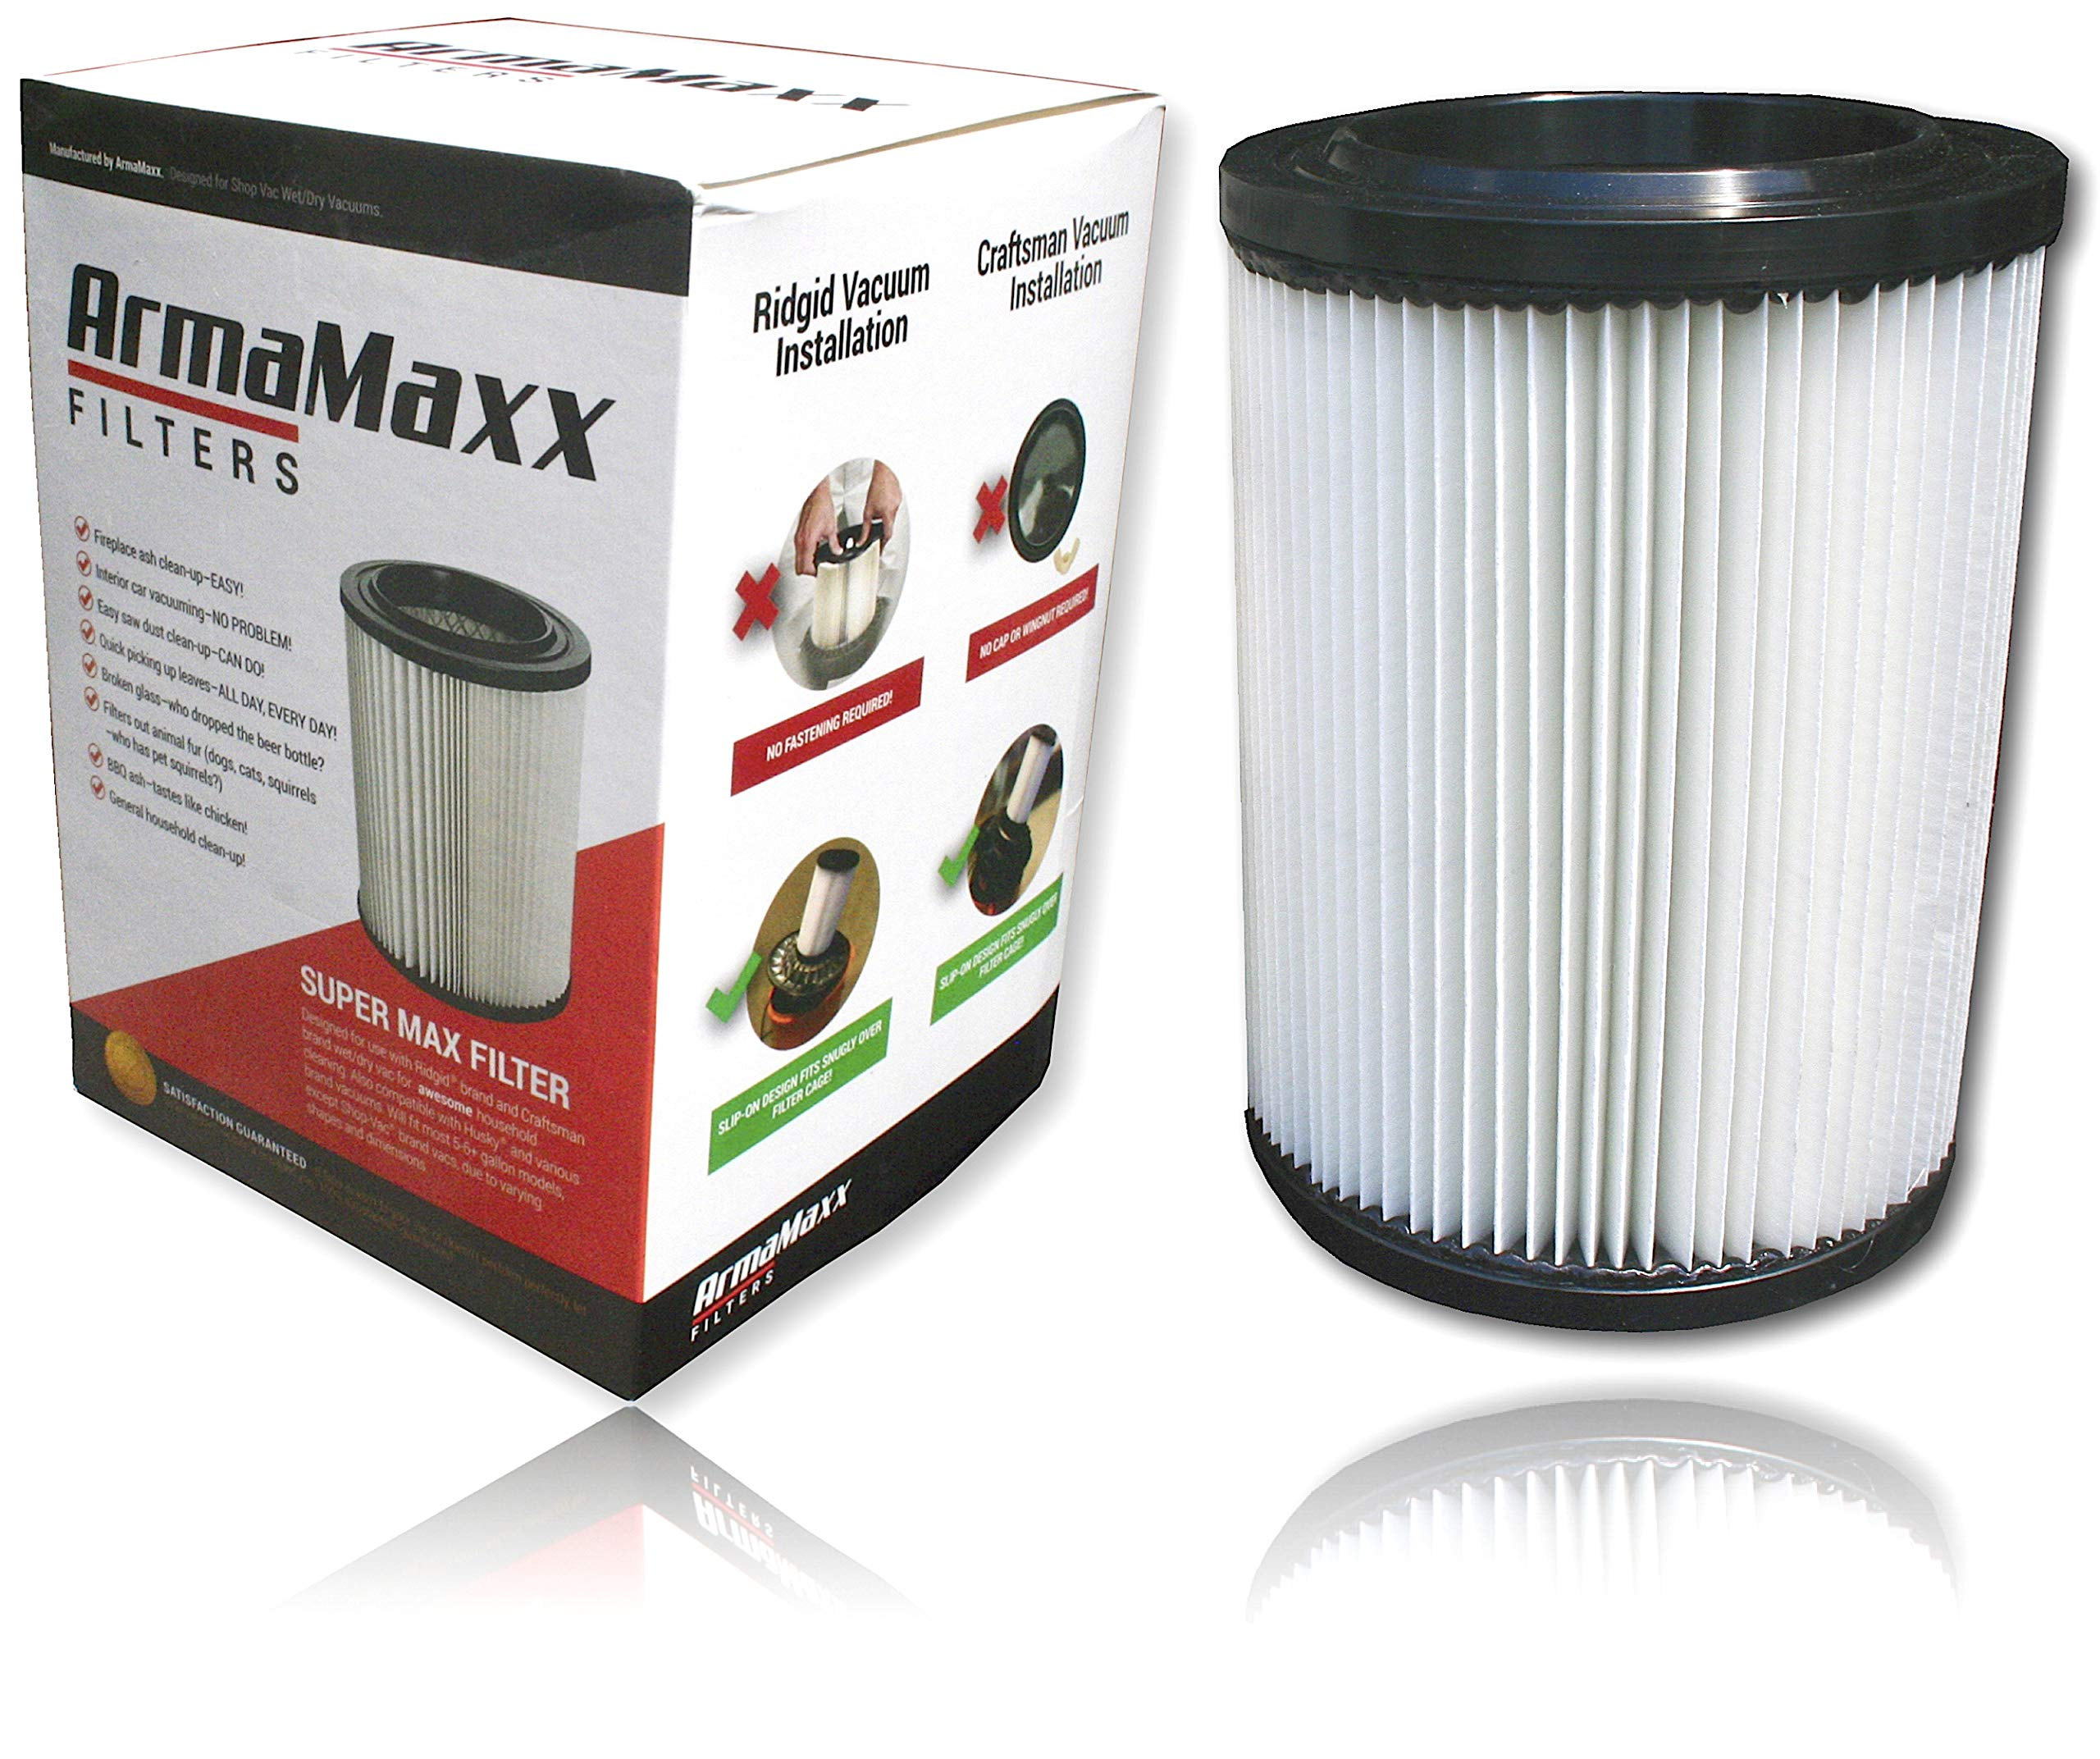 Premium Shop Vac Filter 917816, Supermax Ridgid Craftsman 17816 Vacuum Replacement - 17907 Pleated 3-Layer - 5 Gallon and Up vf 5000 vf 6000 Filters Not Hepa- Easy Cleaning of Ash, Sawdust, Glass by Super Filters